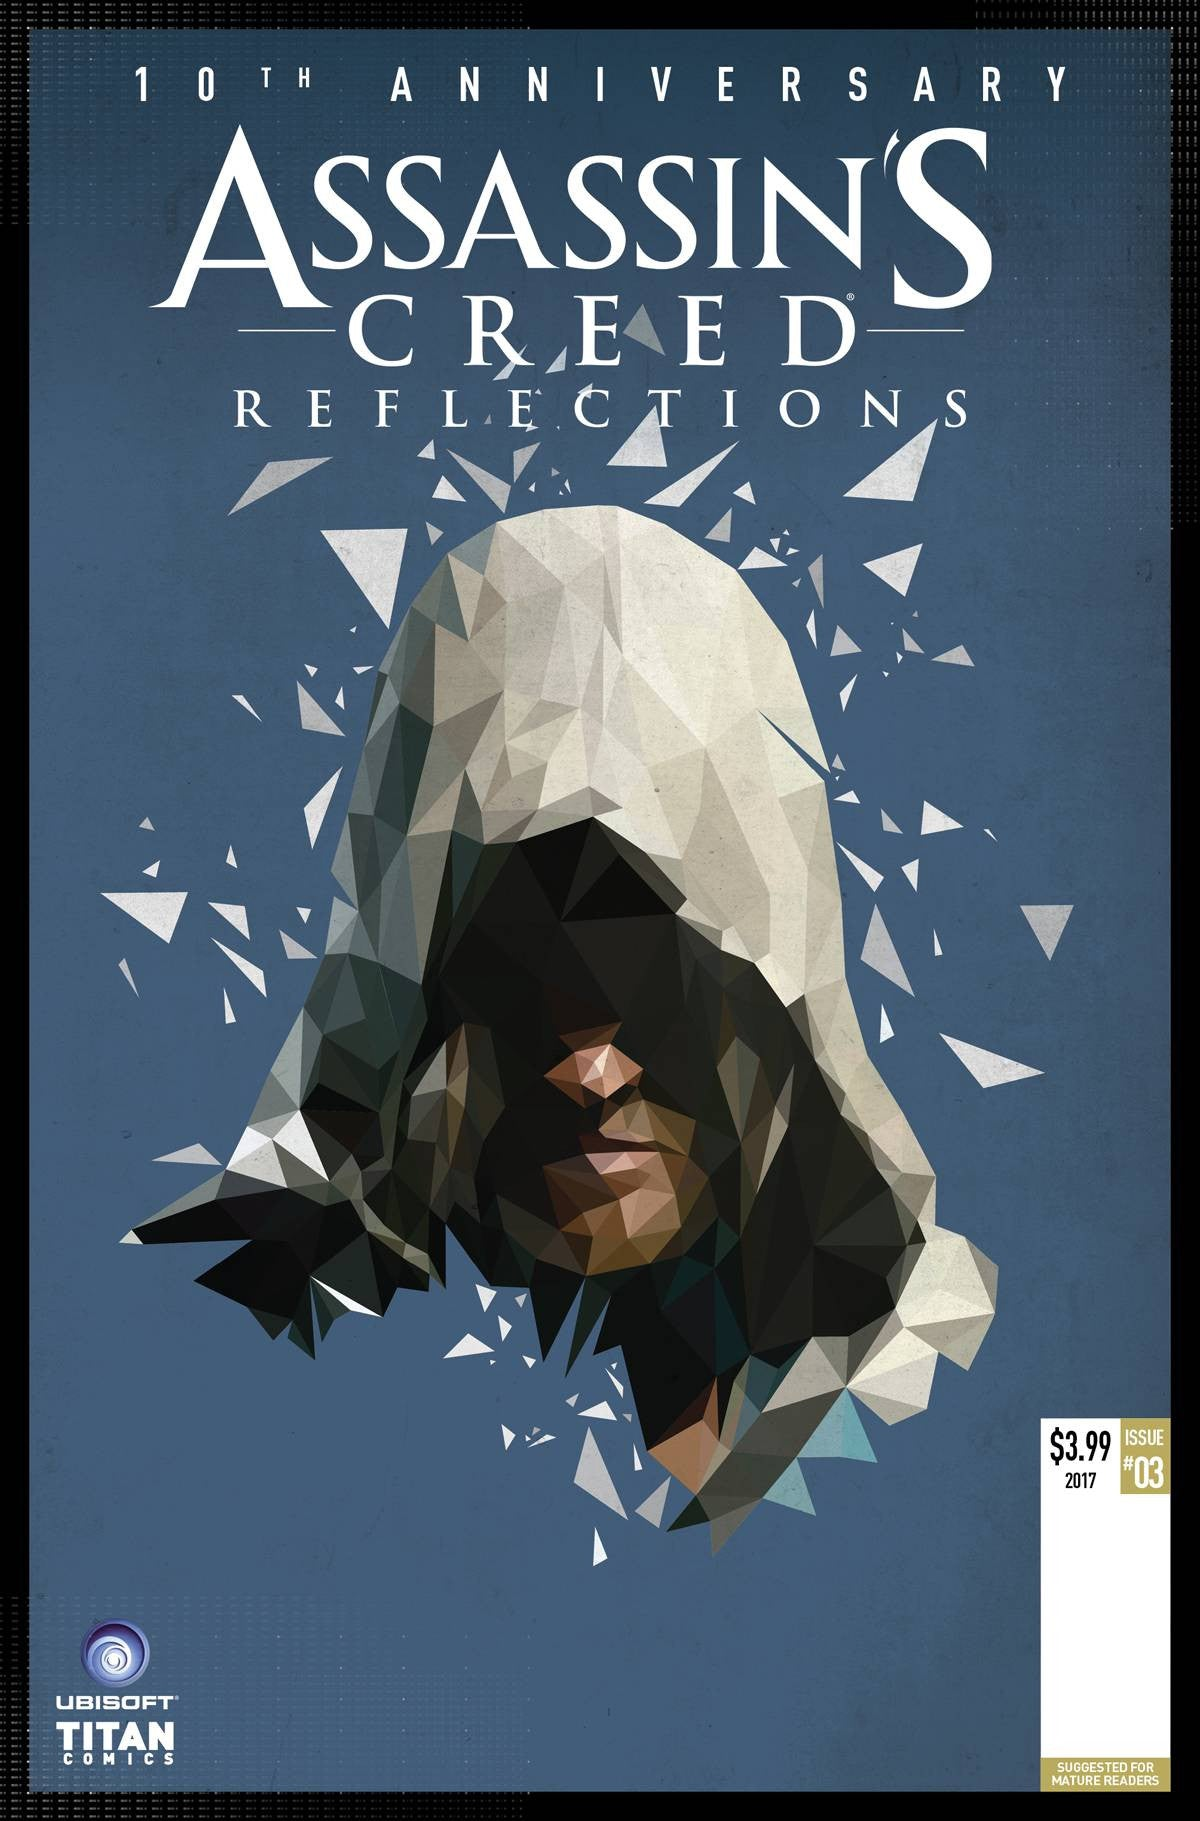 ASSASSINS CREED REFLECTIONS #3 (OF 4) CVR C POLYGON